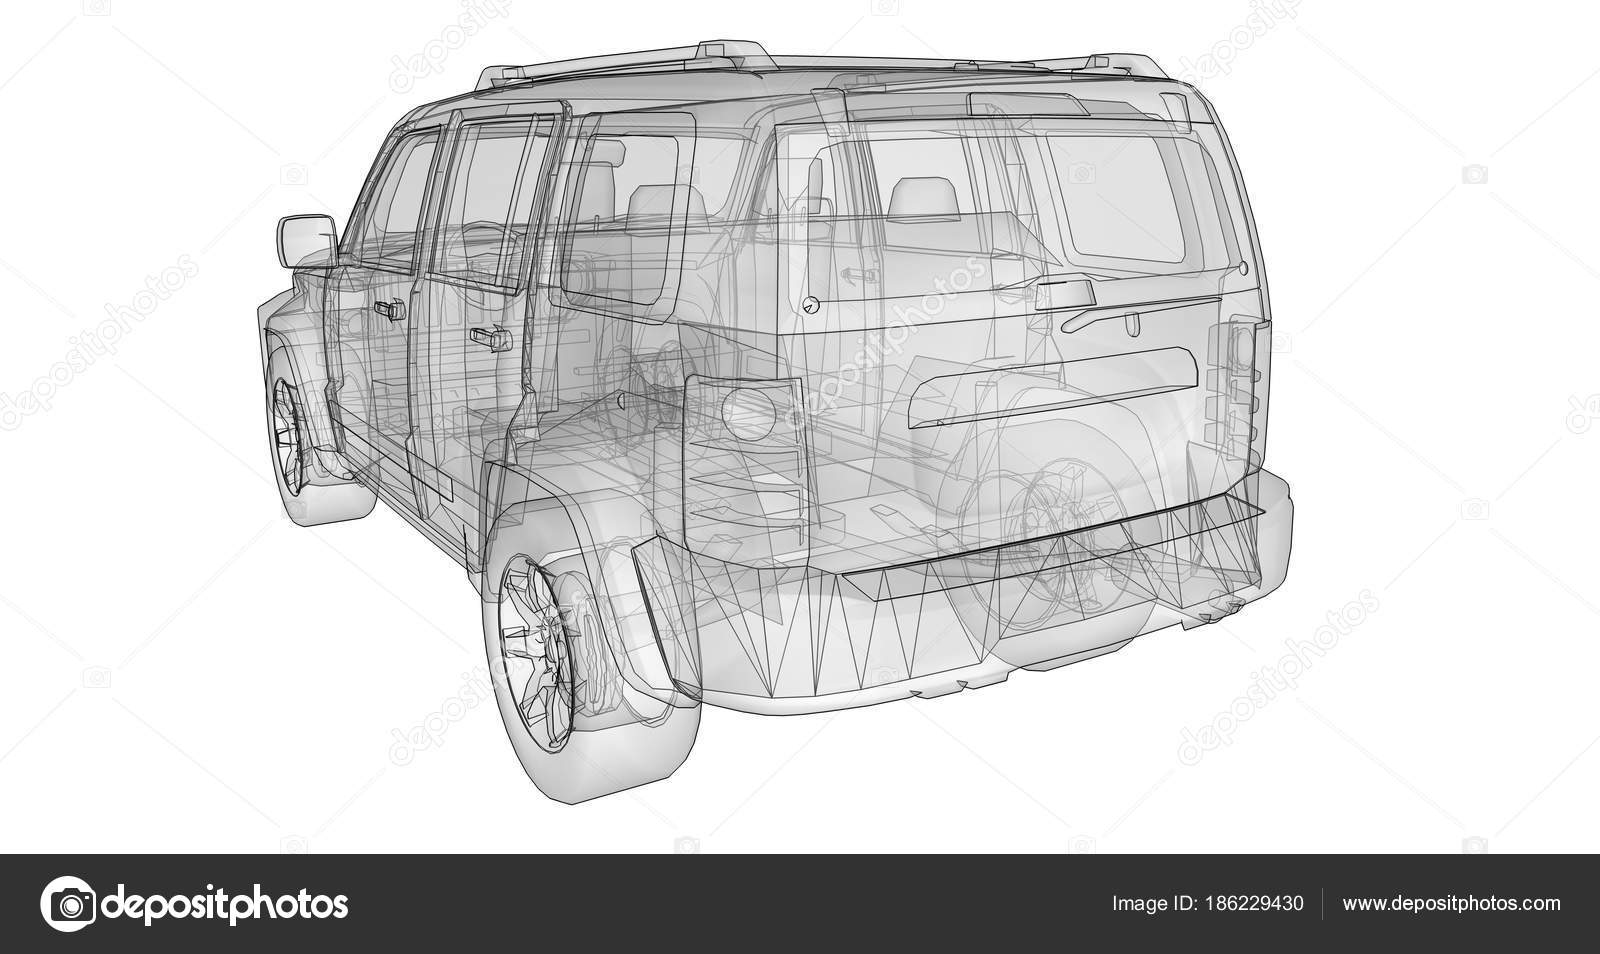 Vector Drawing Straight Lines : Transparent suv with simple straight lines of the body d